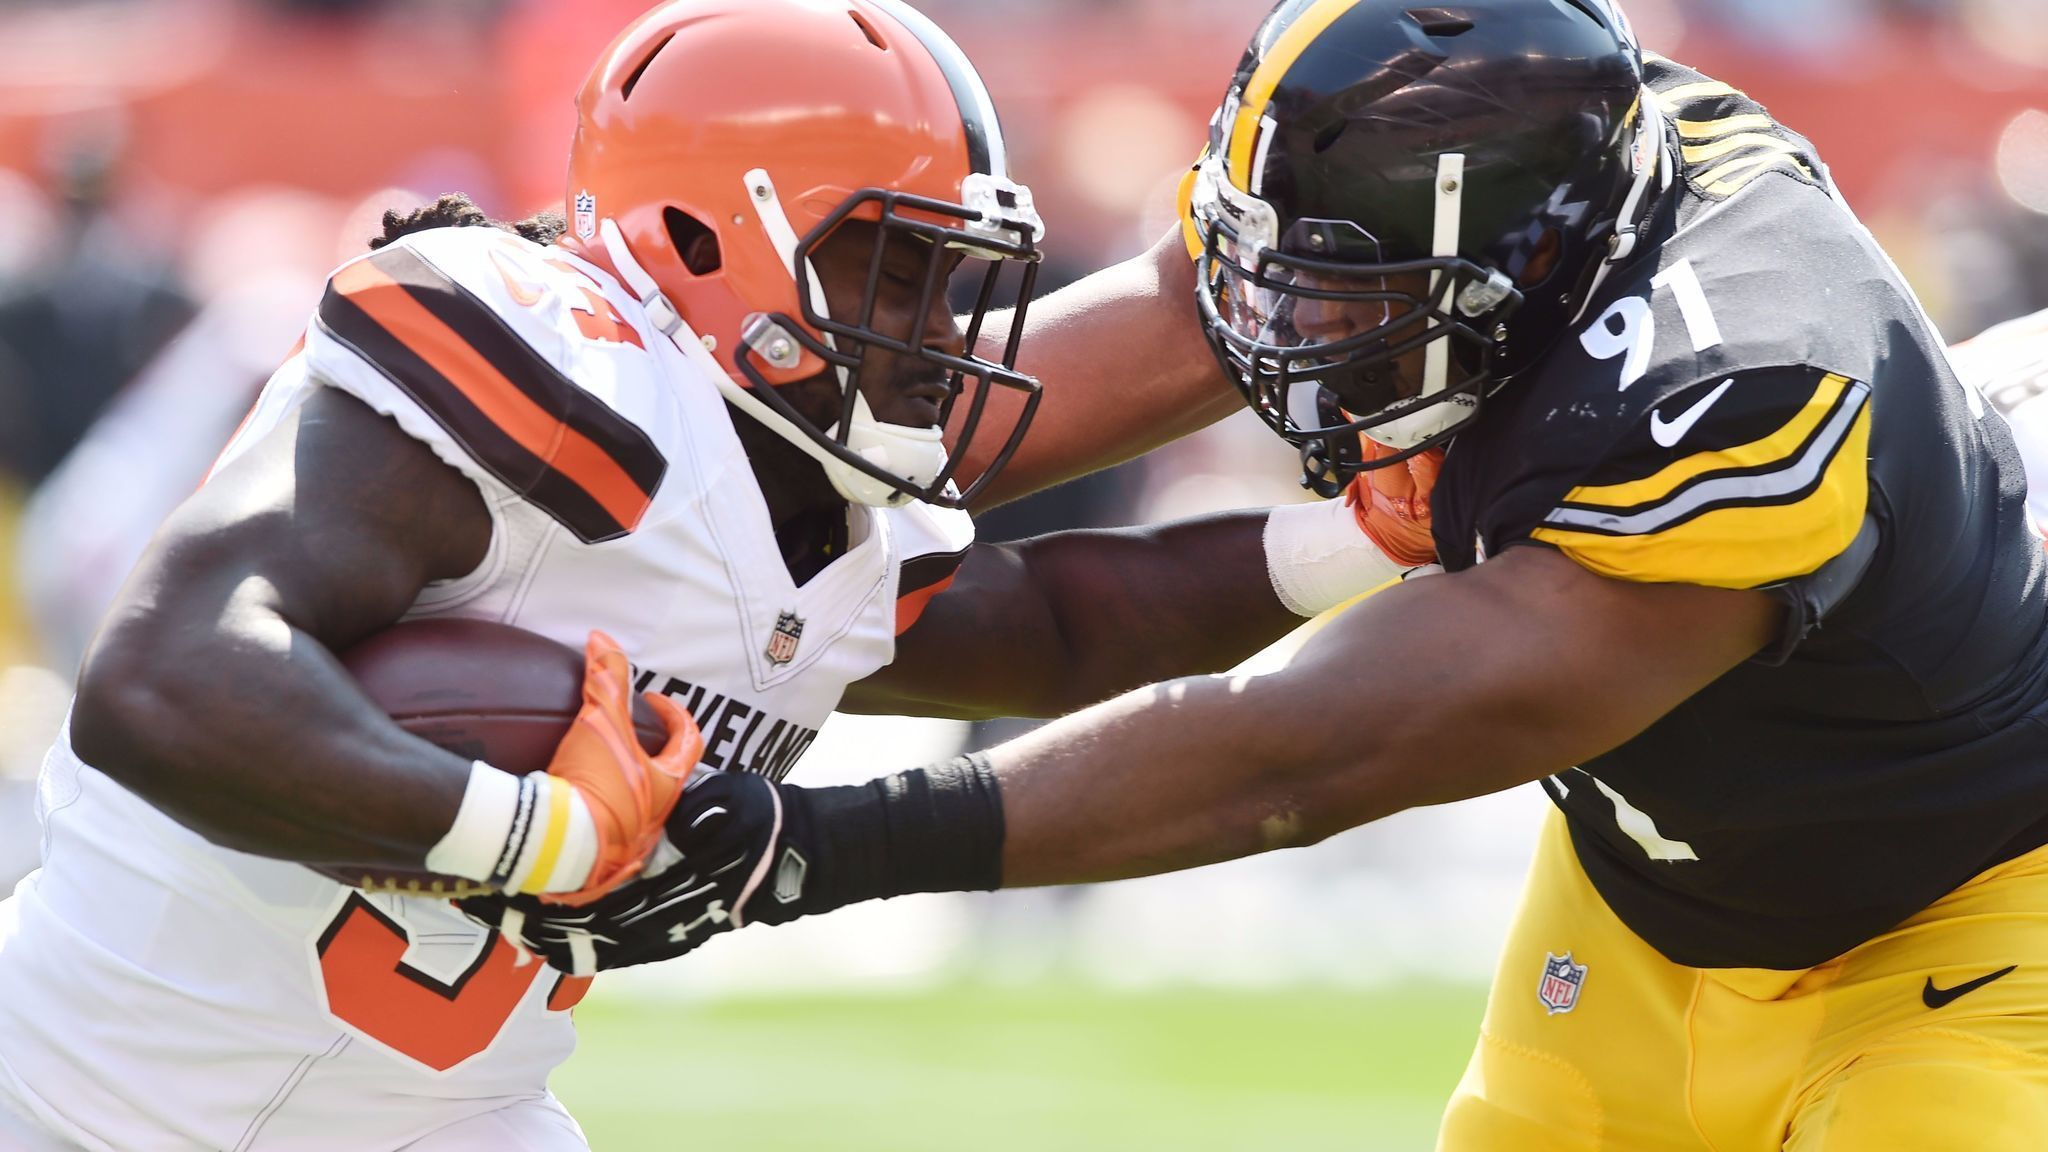 UPDATED Biceps injury might not even keep Stephon Tuitt out one